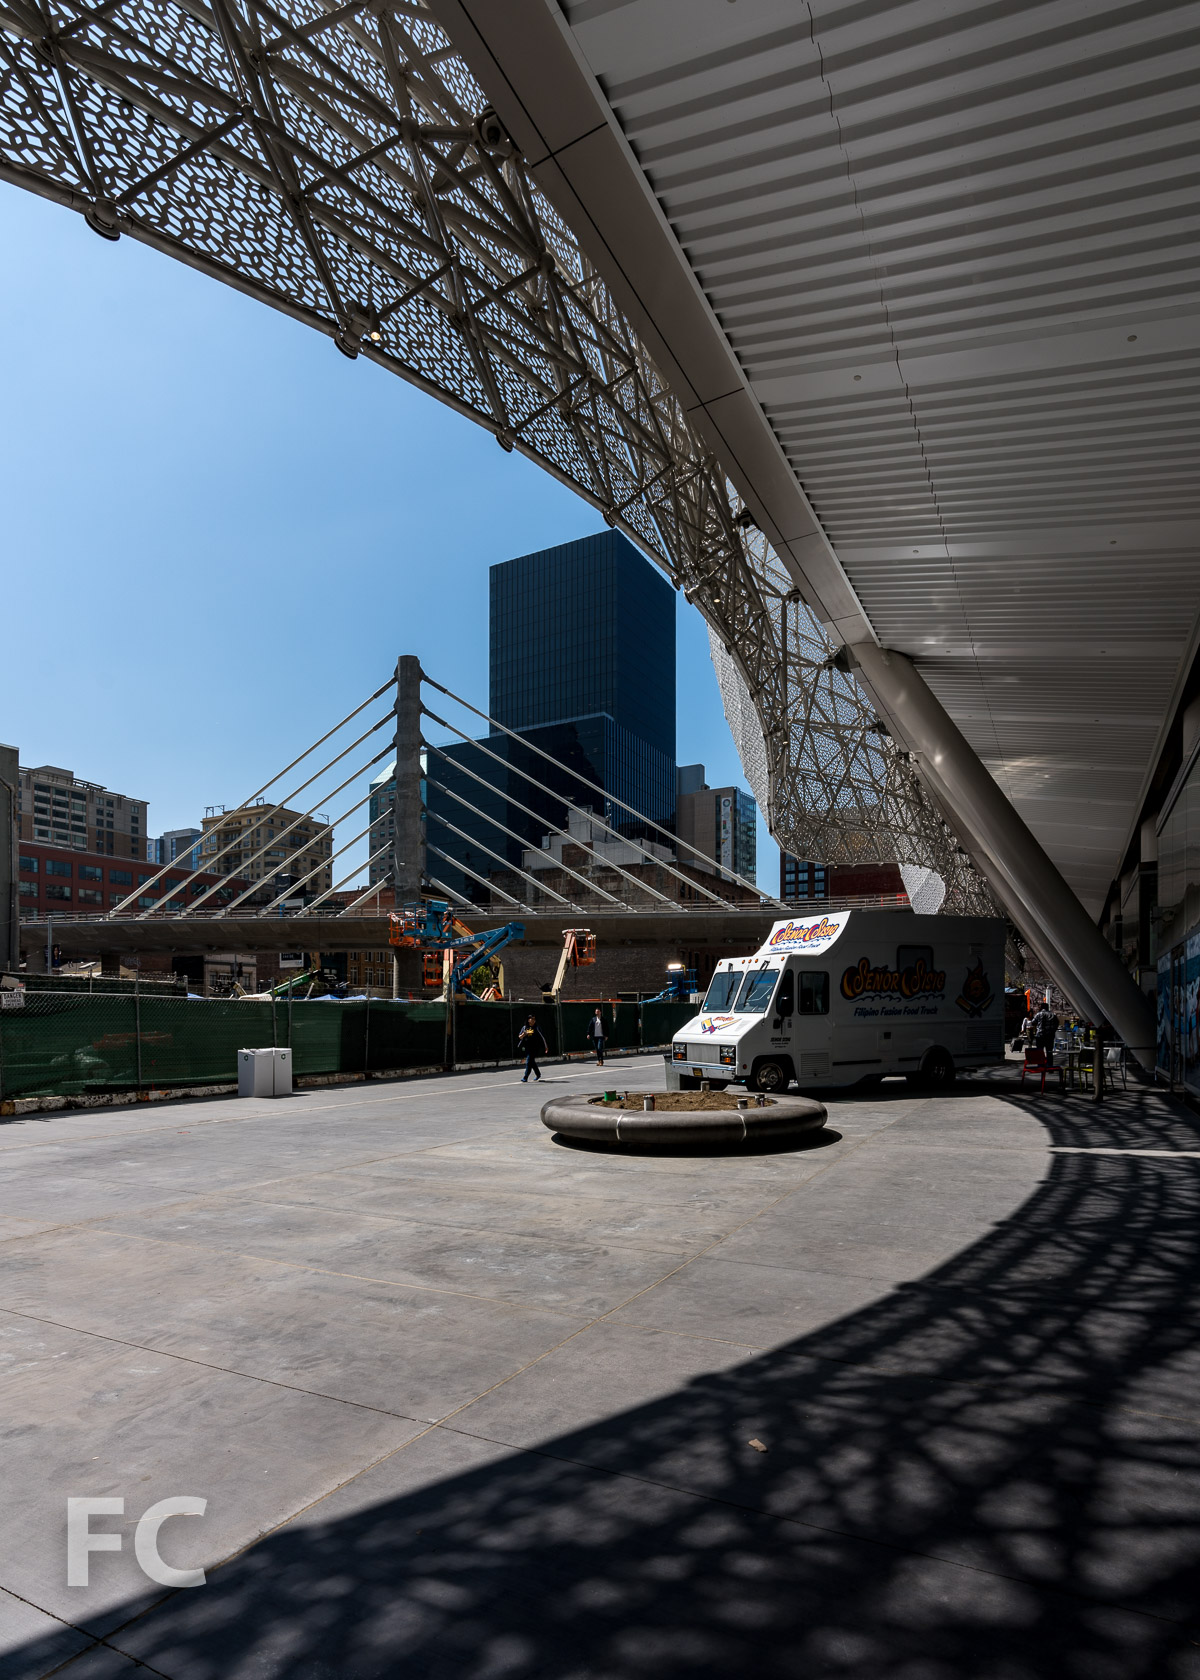 2018_08_16-Transbay Transit Center-DSC01278.jpg